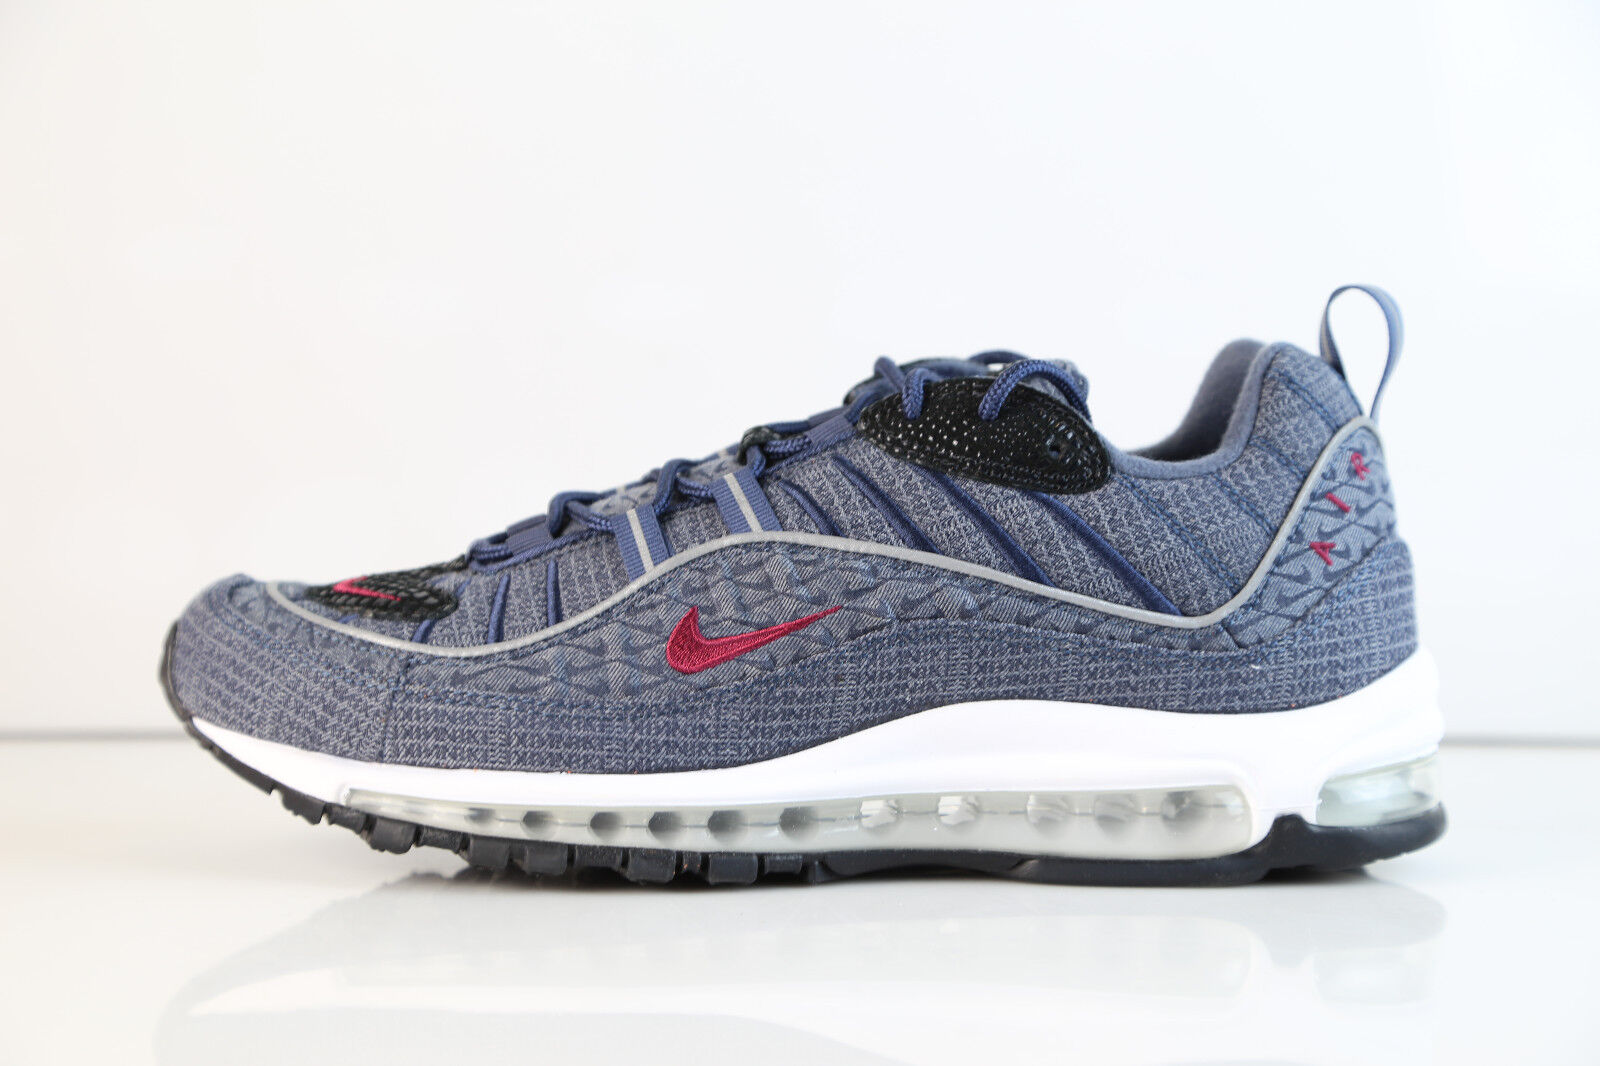 Nike Air Max 98 QS Thunder Blue Team Red 924462-400 8-12 11 97 1 best-selling model of the brand